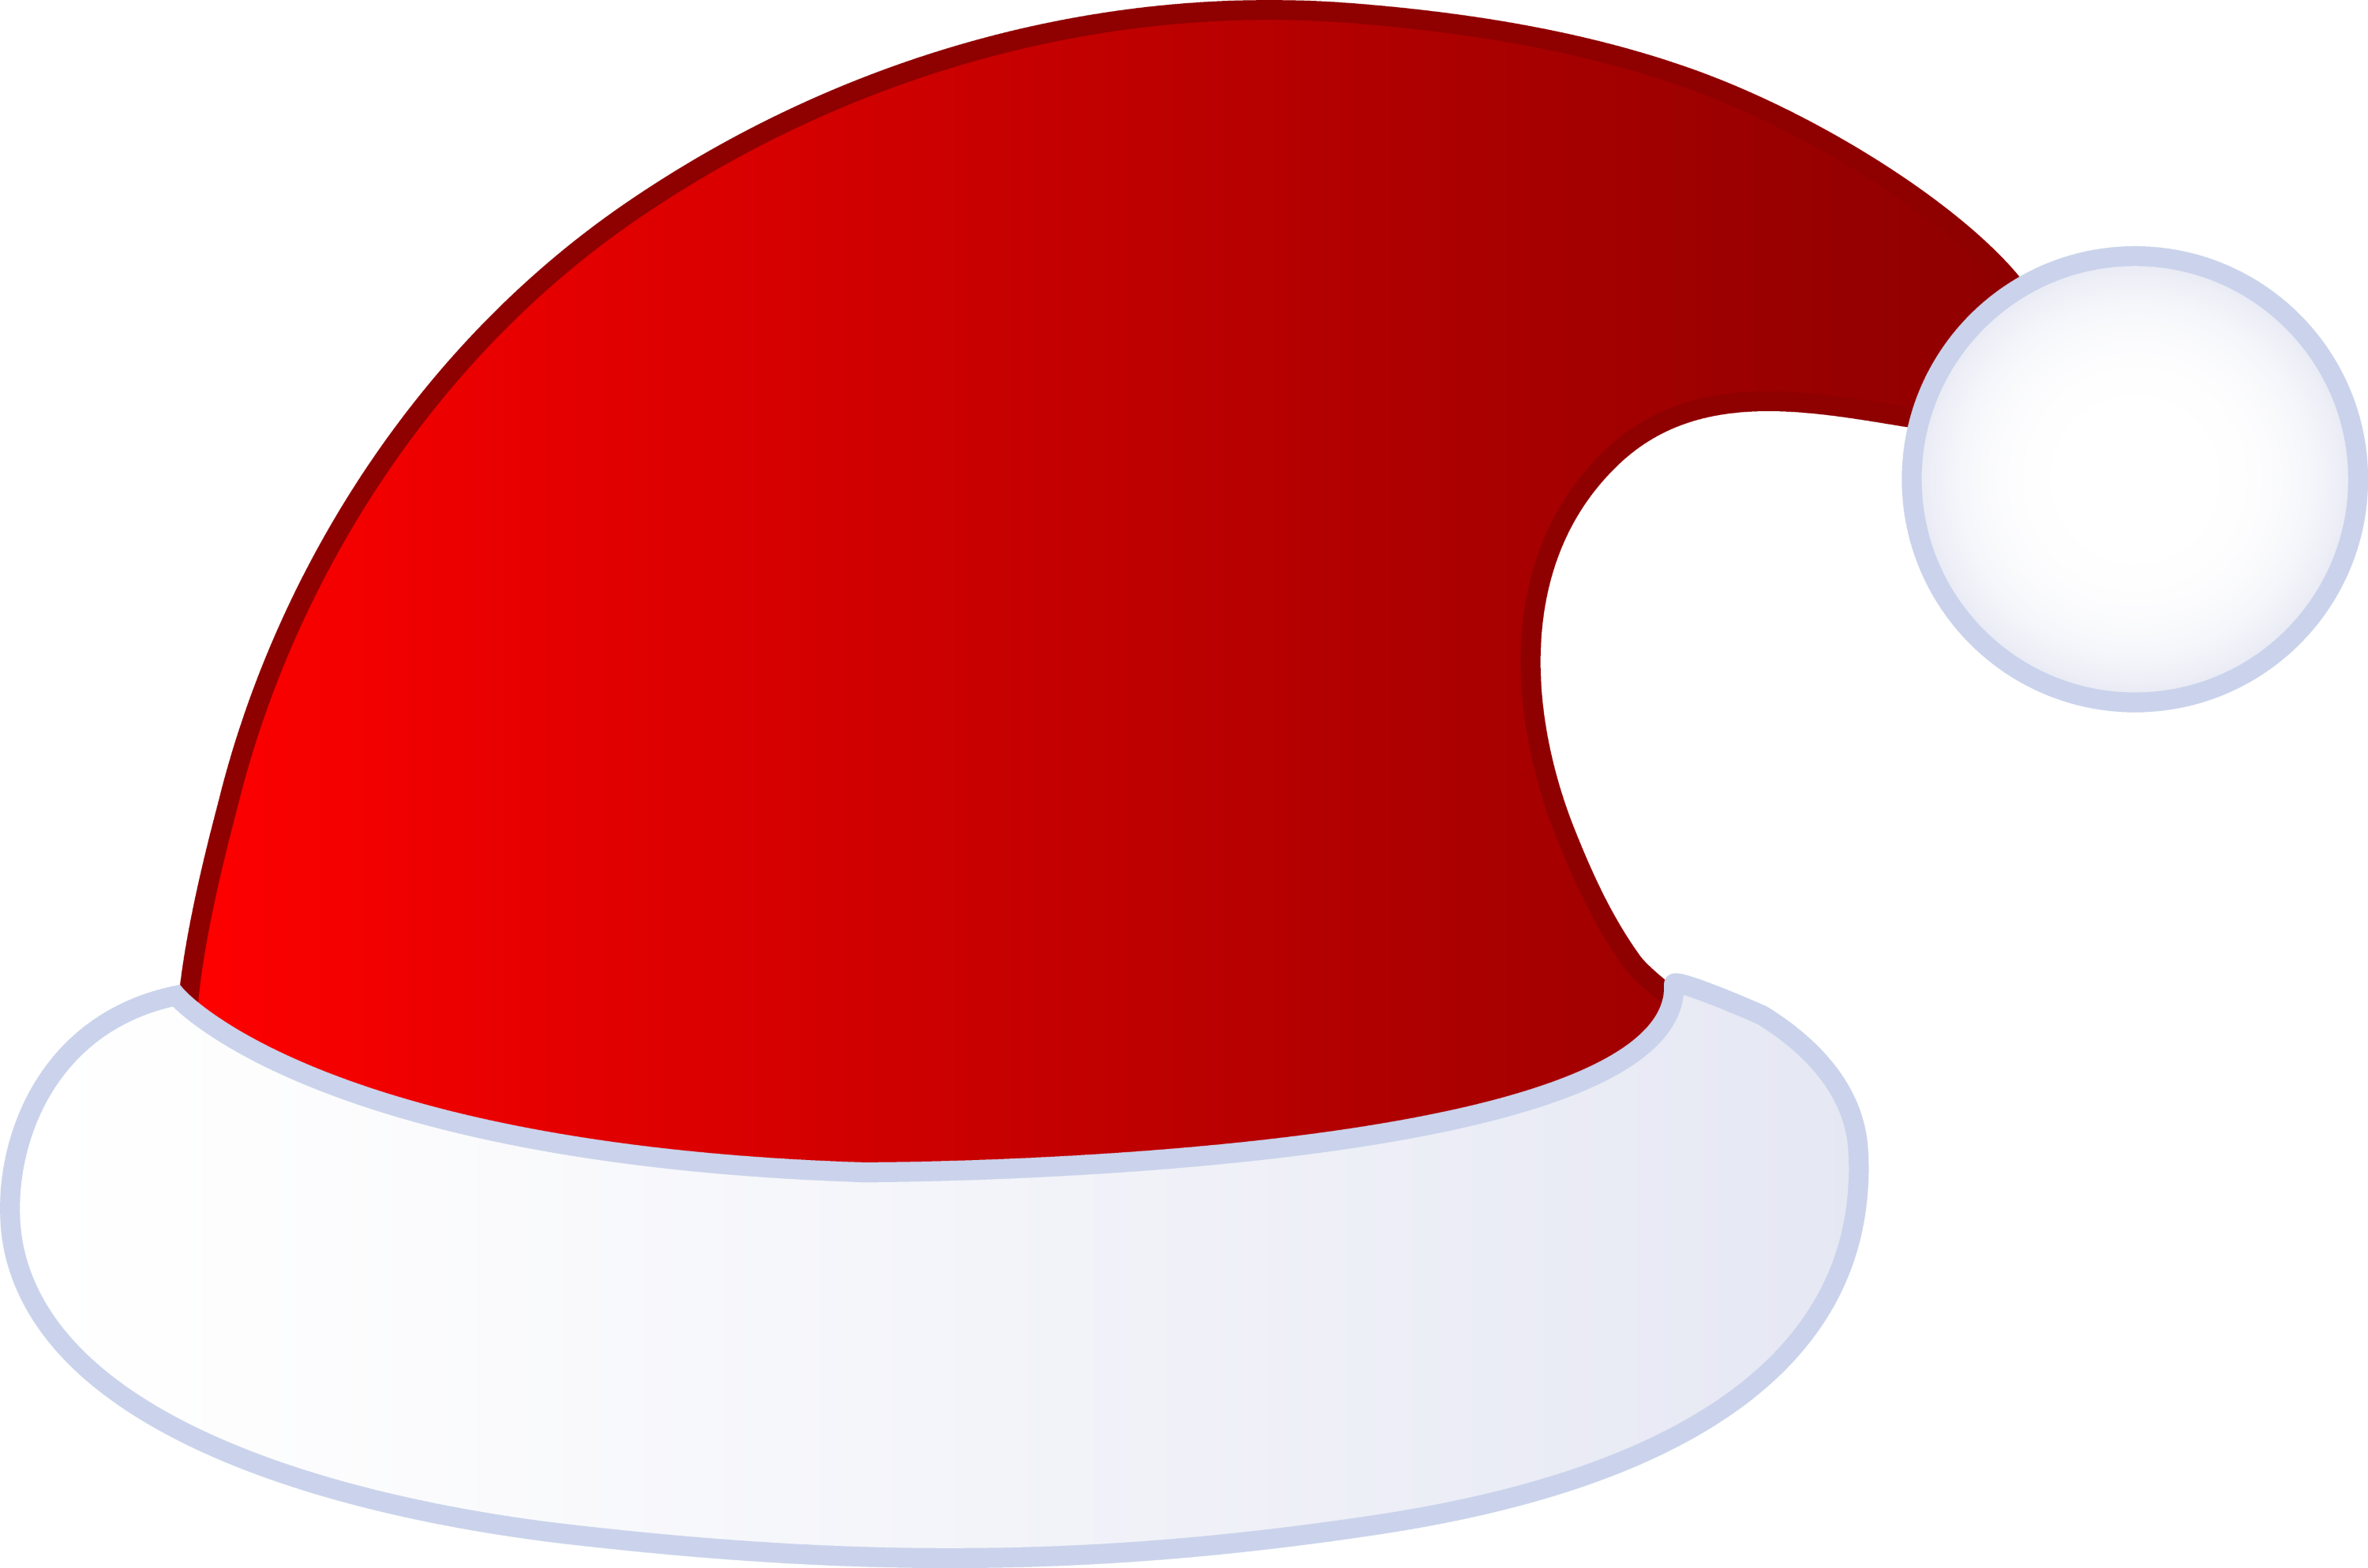 santa hat clipart with transparent background - photo #24